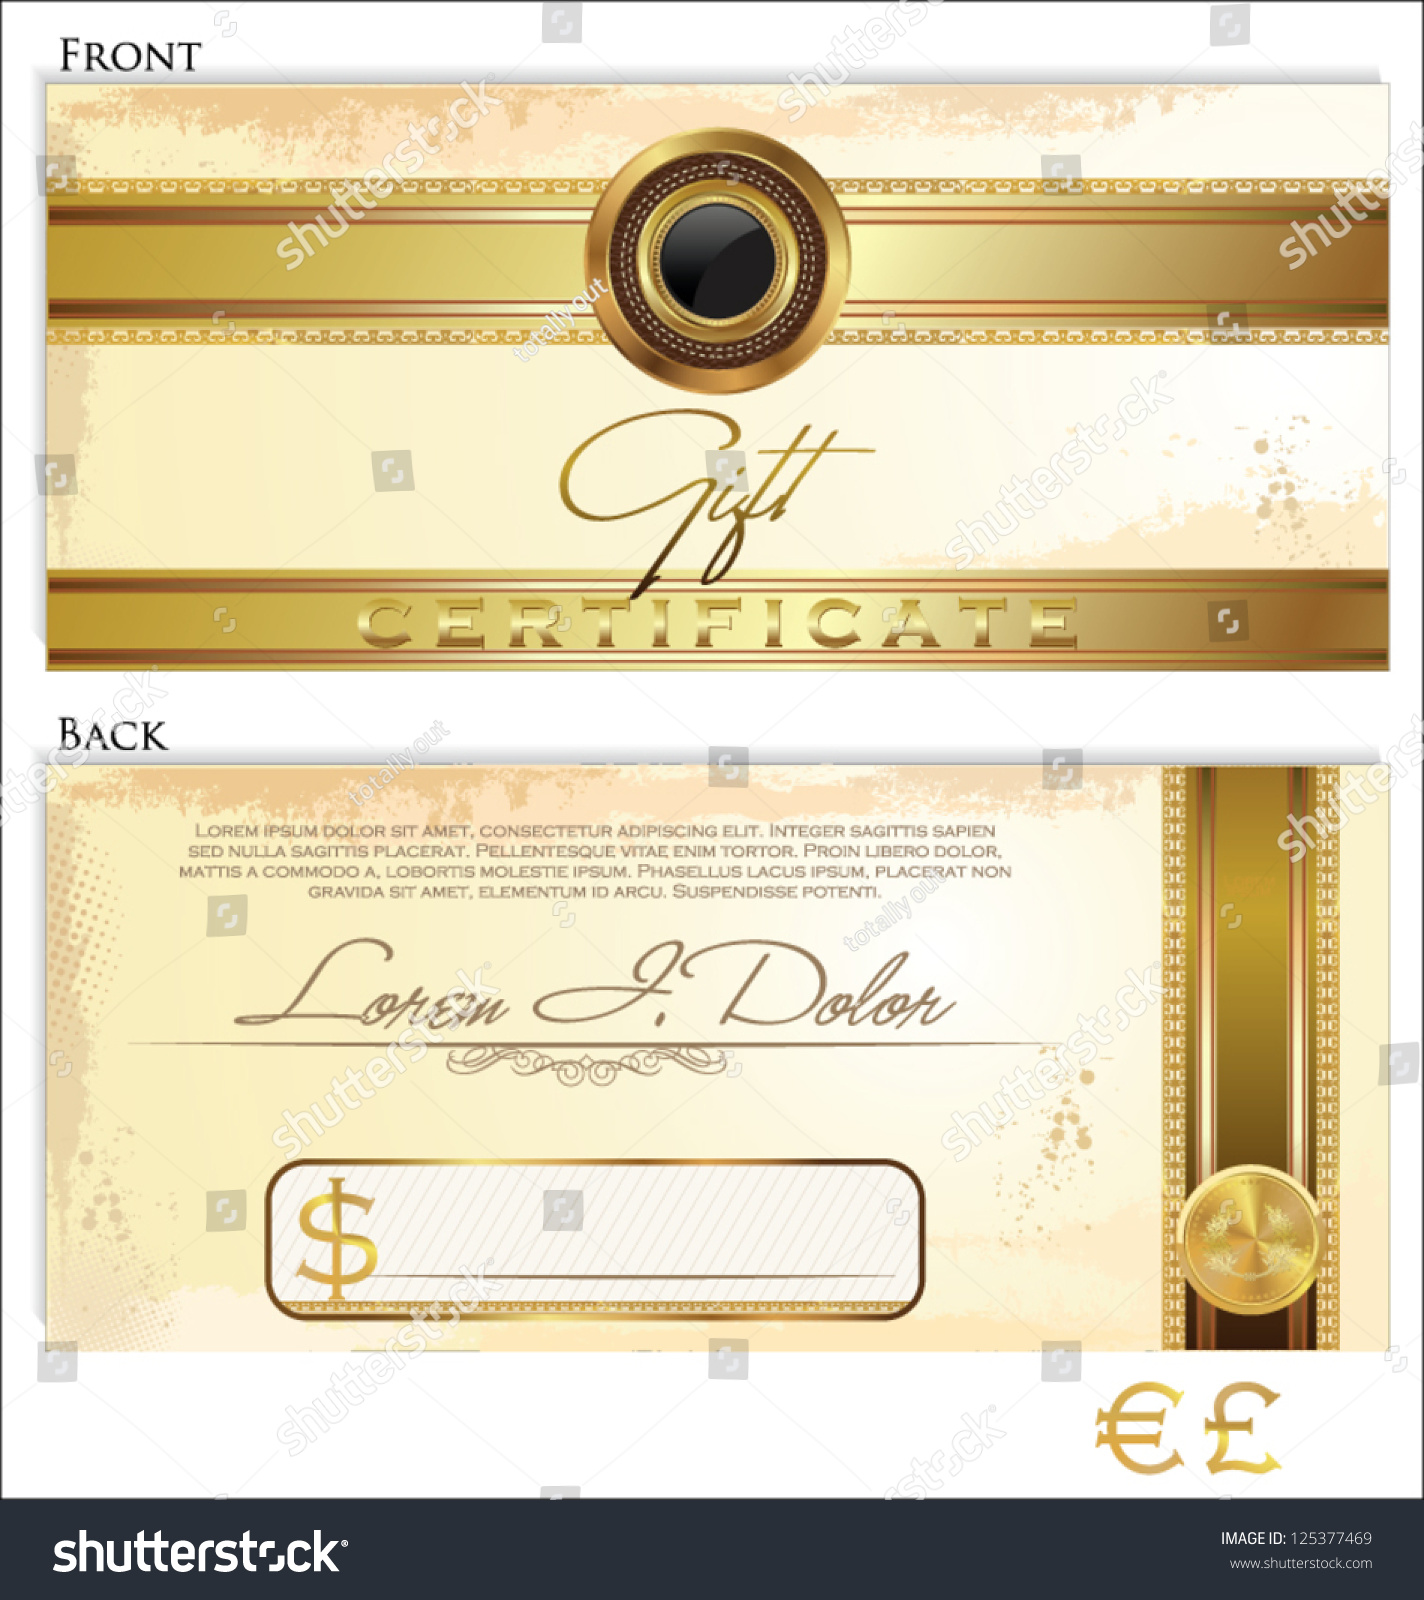 Gift certificate template front back design stock vector 125377469 gift certificate template front and back design yadclub Gallery